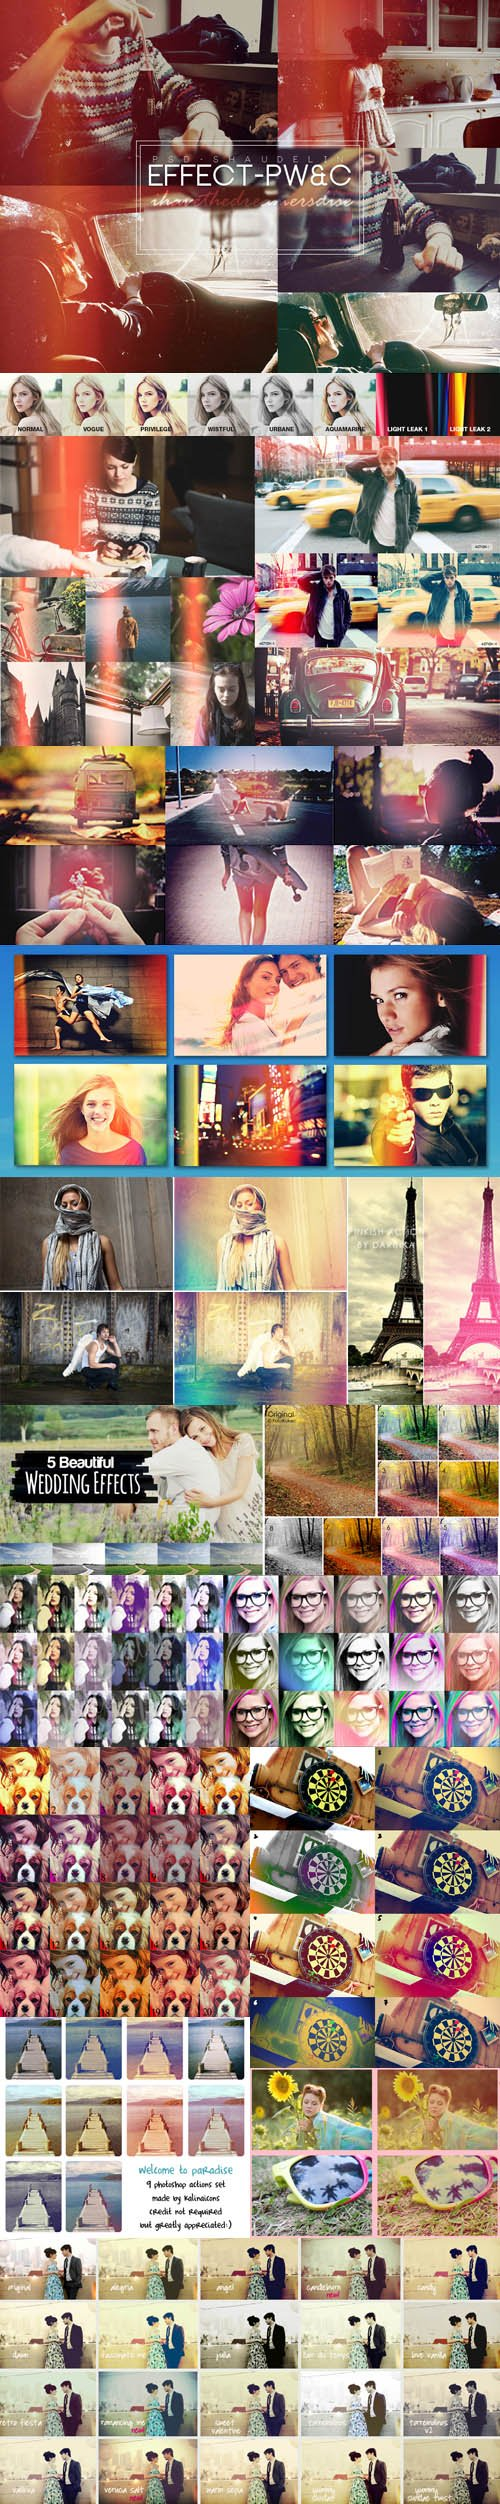 Light Leaks & Retro Effects Photoshop Actions (16 ATN)